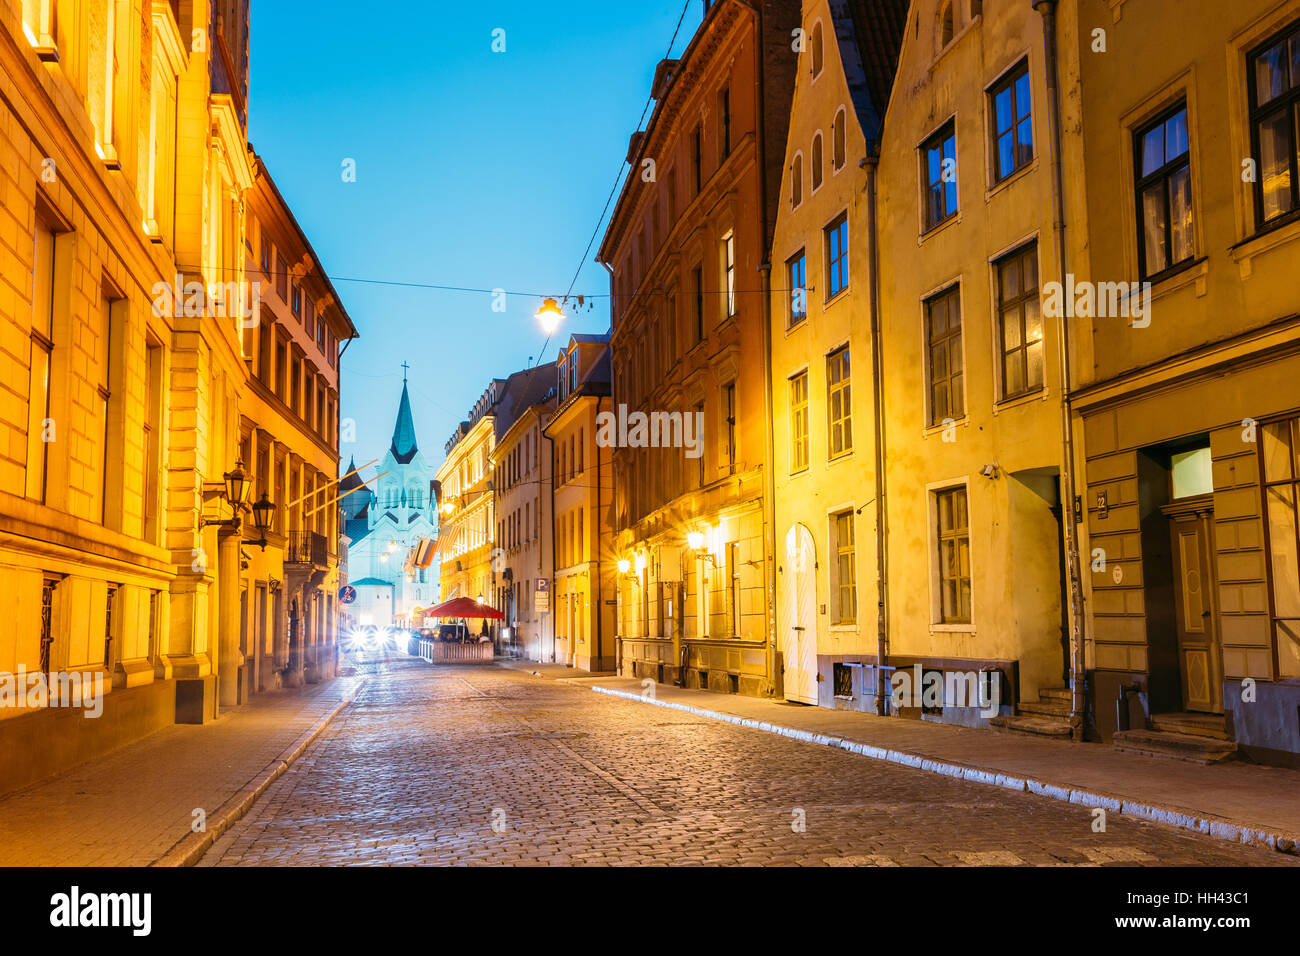 Riga Latvia. The White Tower With Pyramidal Spire Of Our Lady Of Sorrows Or Virgin Of Anguish Church, Ancient Catholic - Stock Image